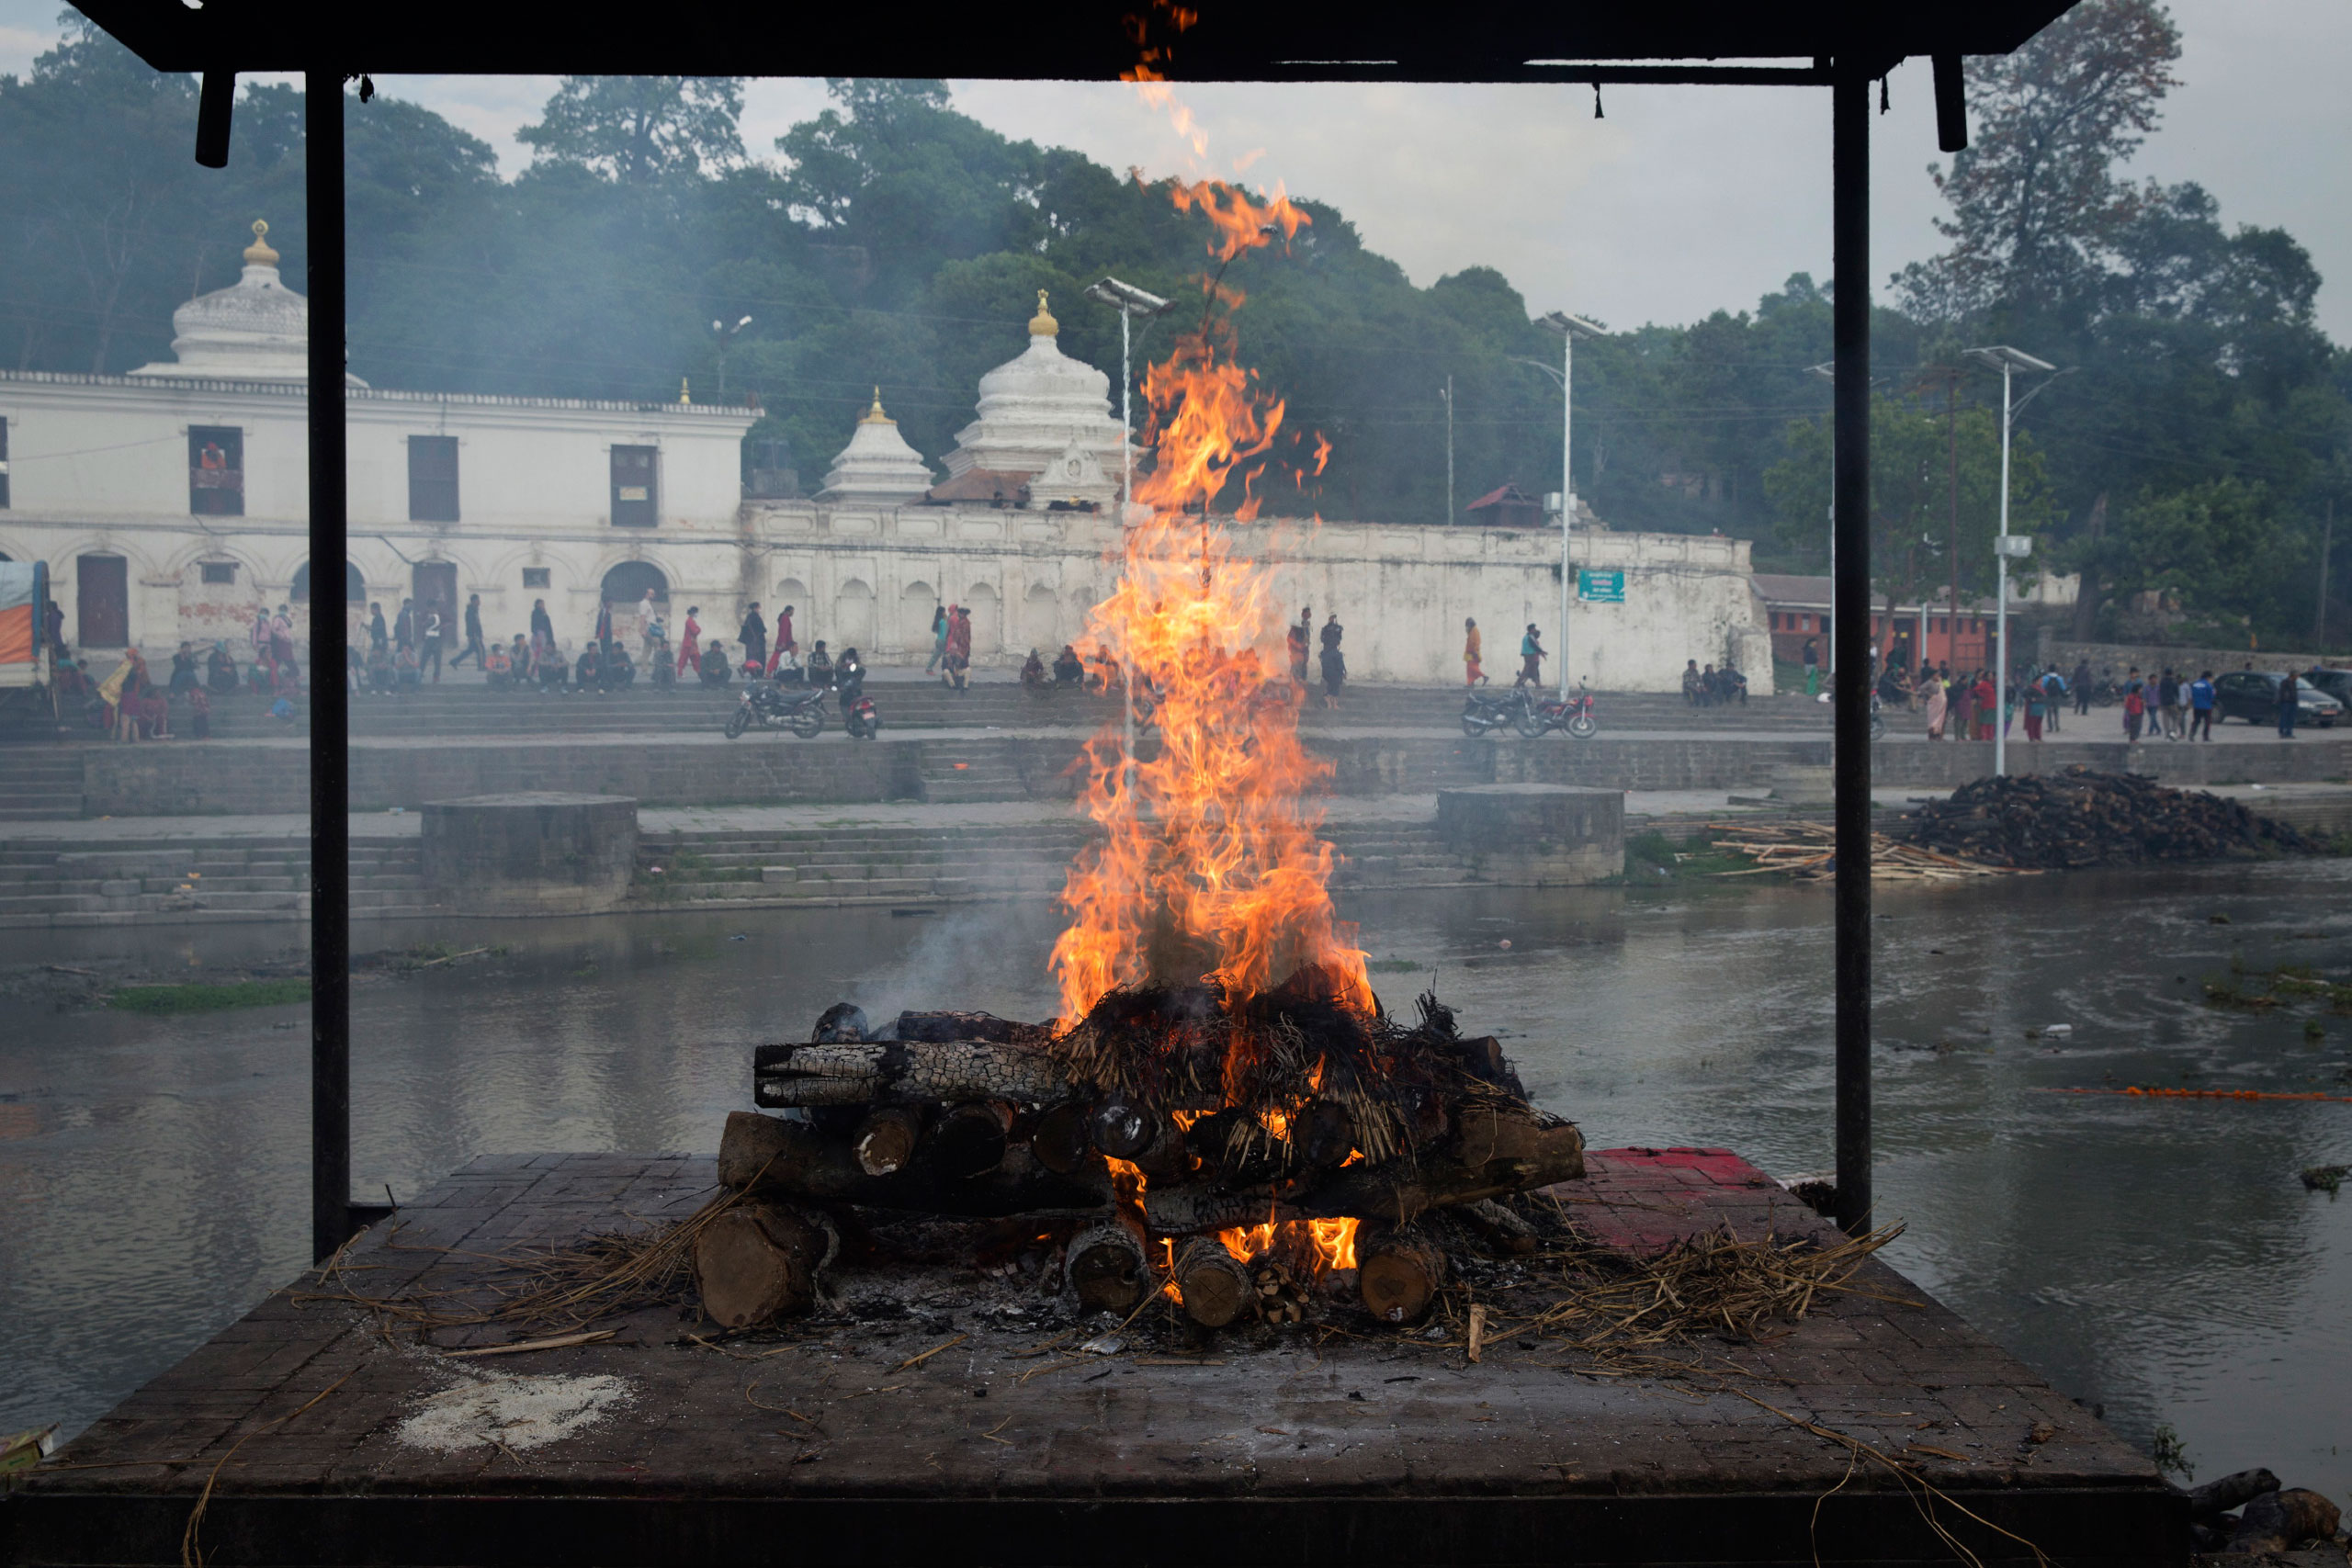 A funeral pyre built for a person killed in the earthquake, on the river in Kathmandu, April 27, 2015.